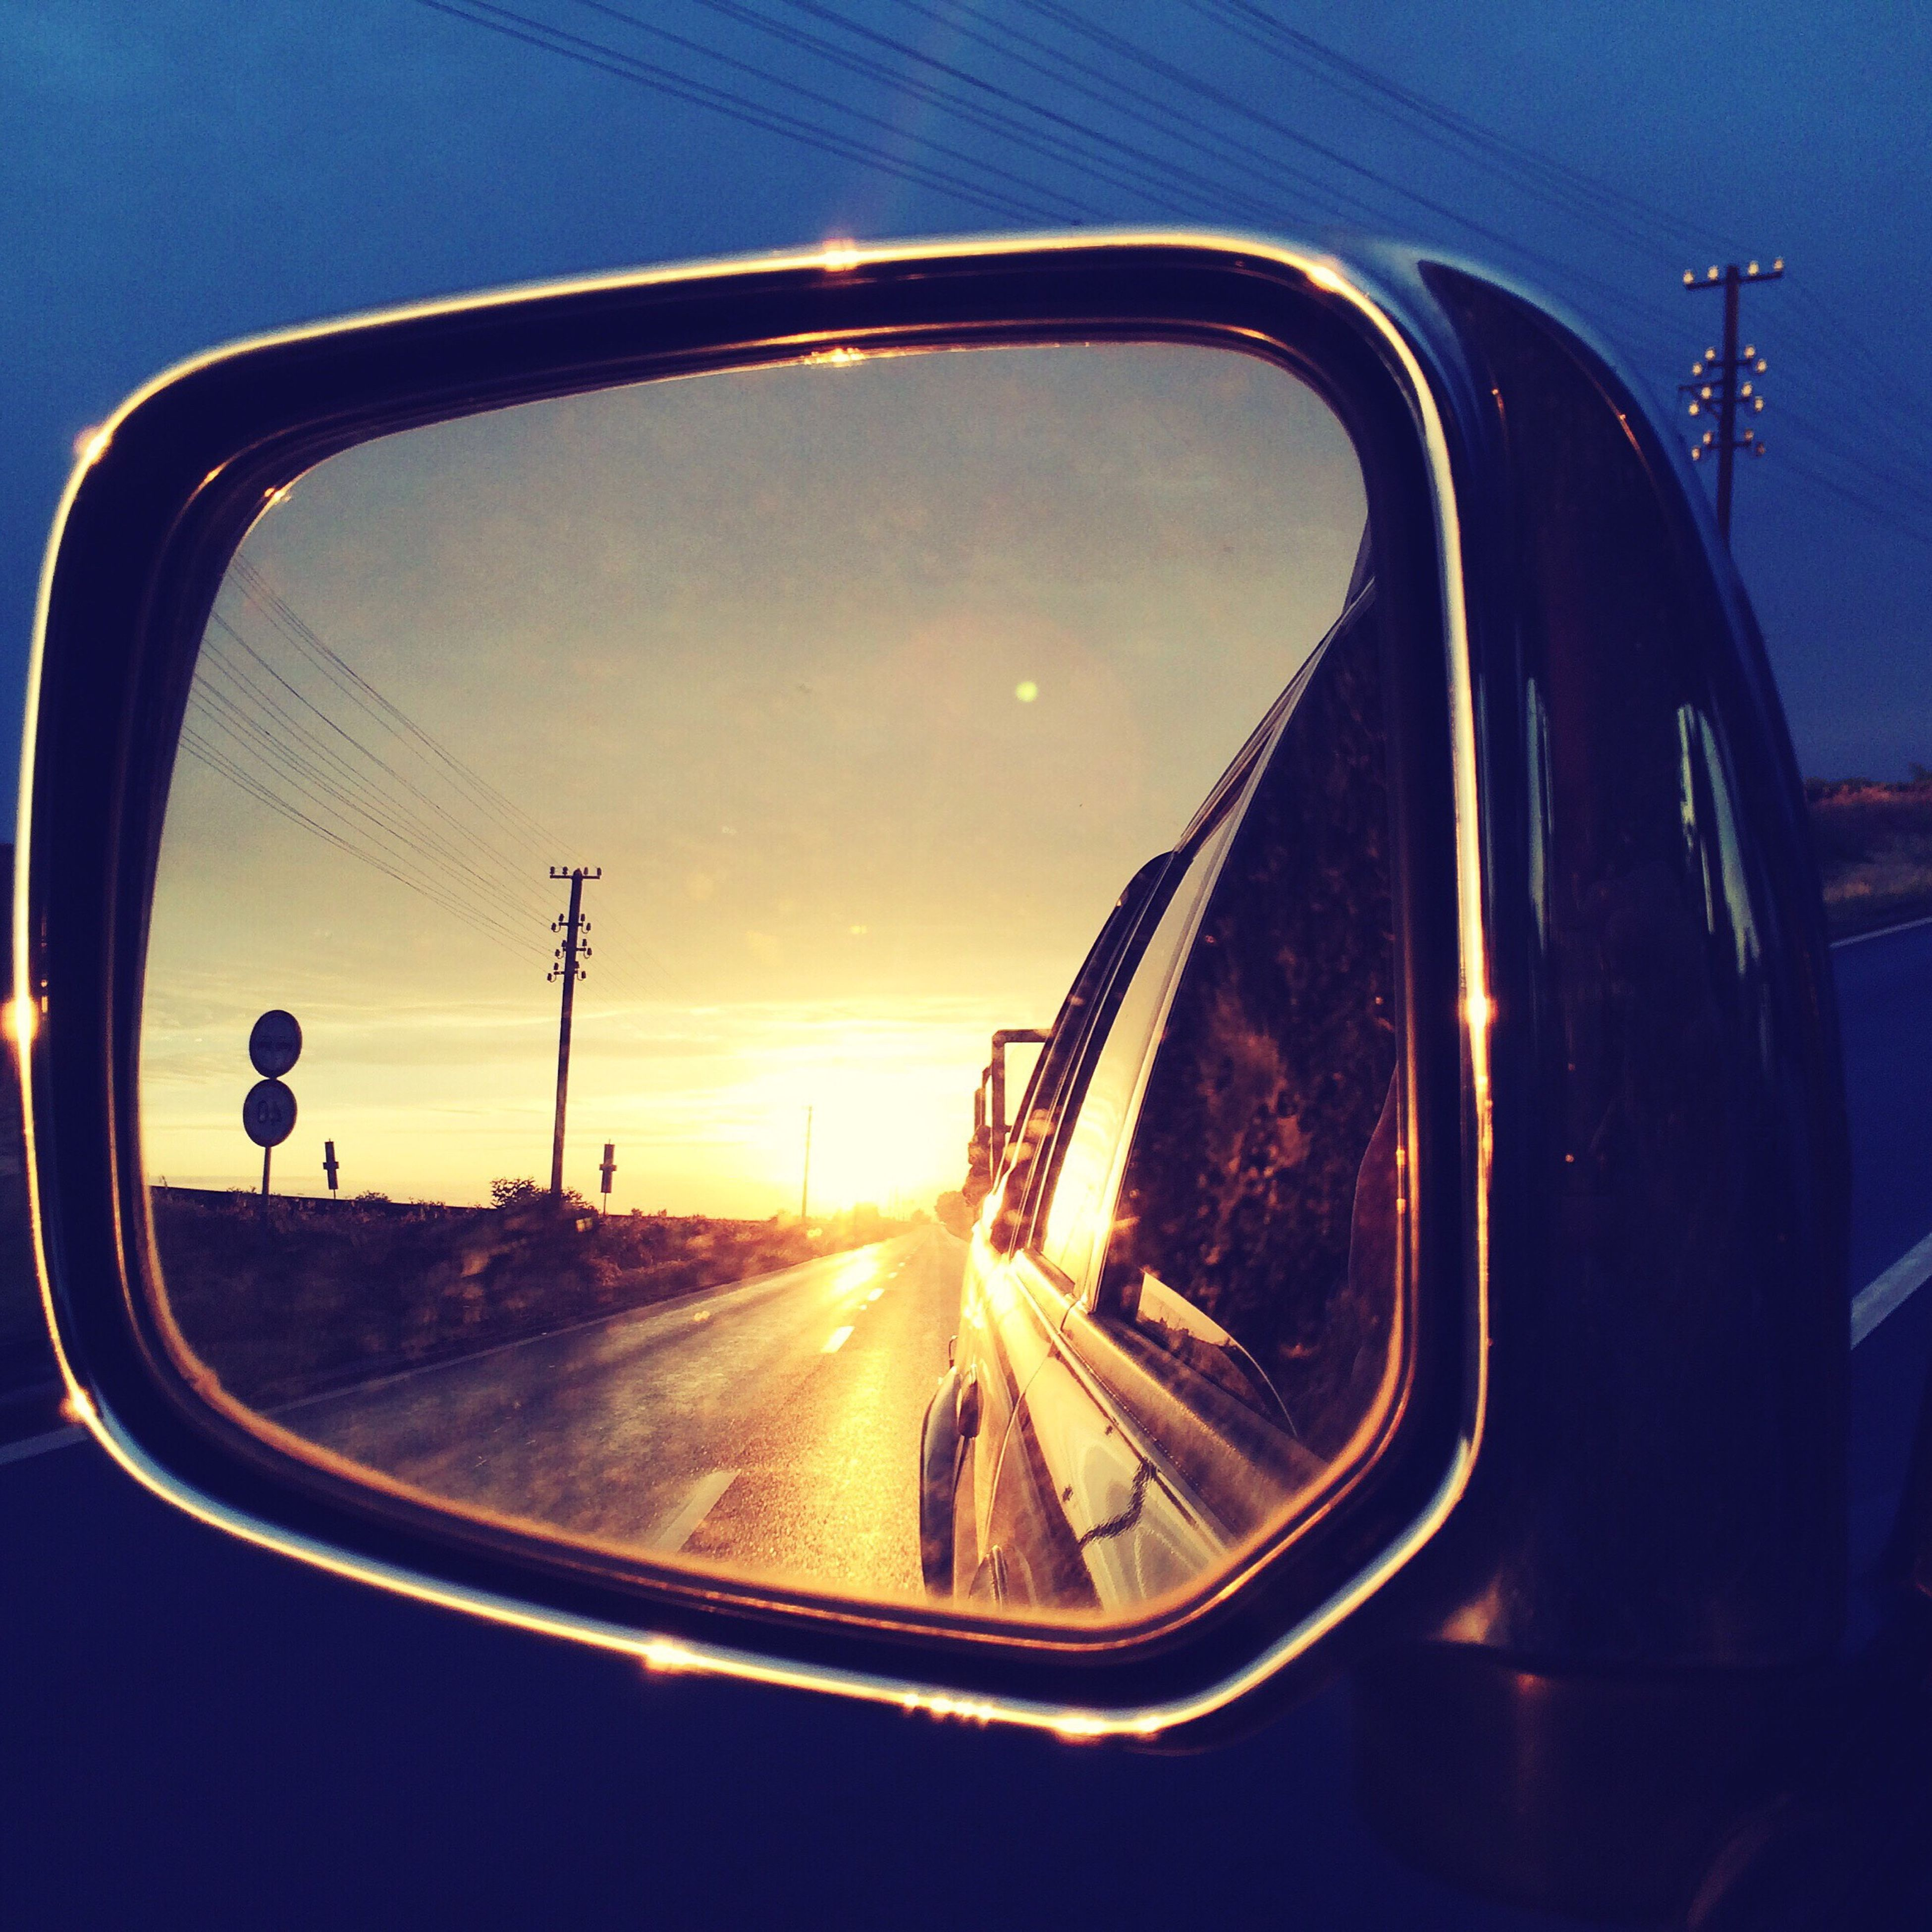 transportation, mode of transport, car, land vehicle, side-view mirror, vehicle interior, sunset, glass - material, transparent, sky, road, reflection, windshield, car interior, travel, sun, on the move, sunlight, part of, window